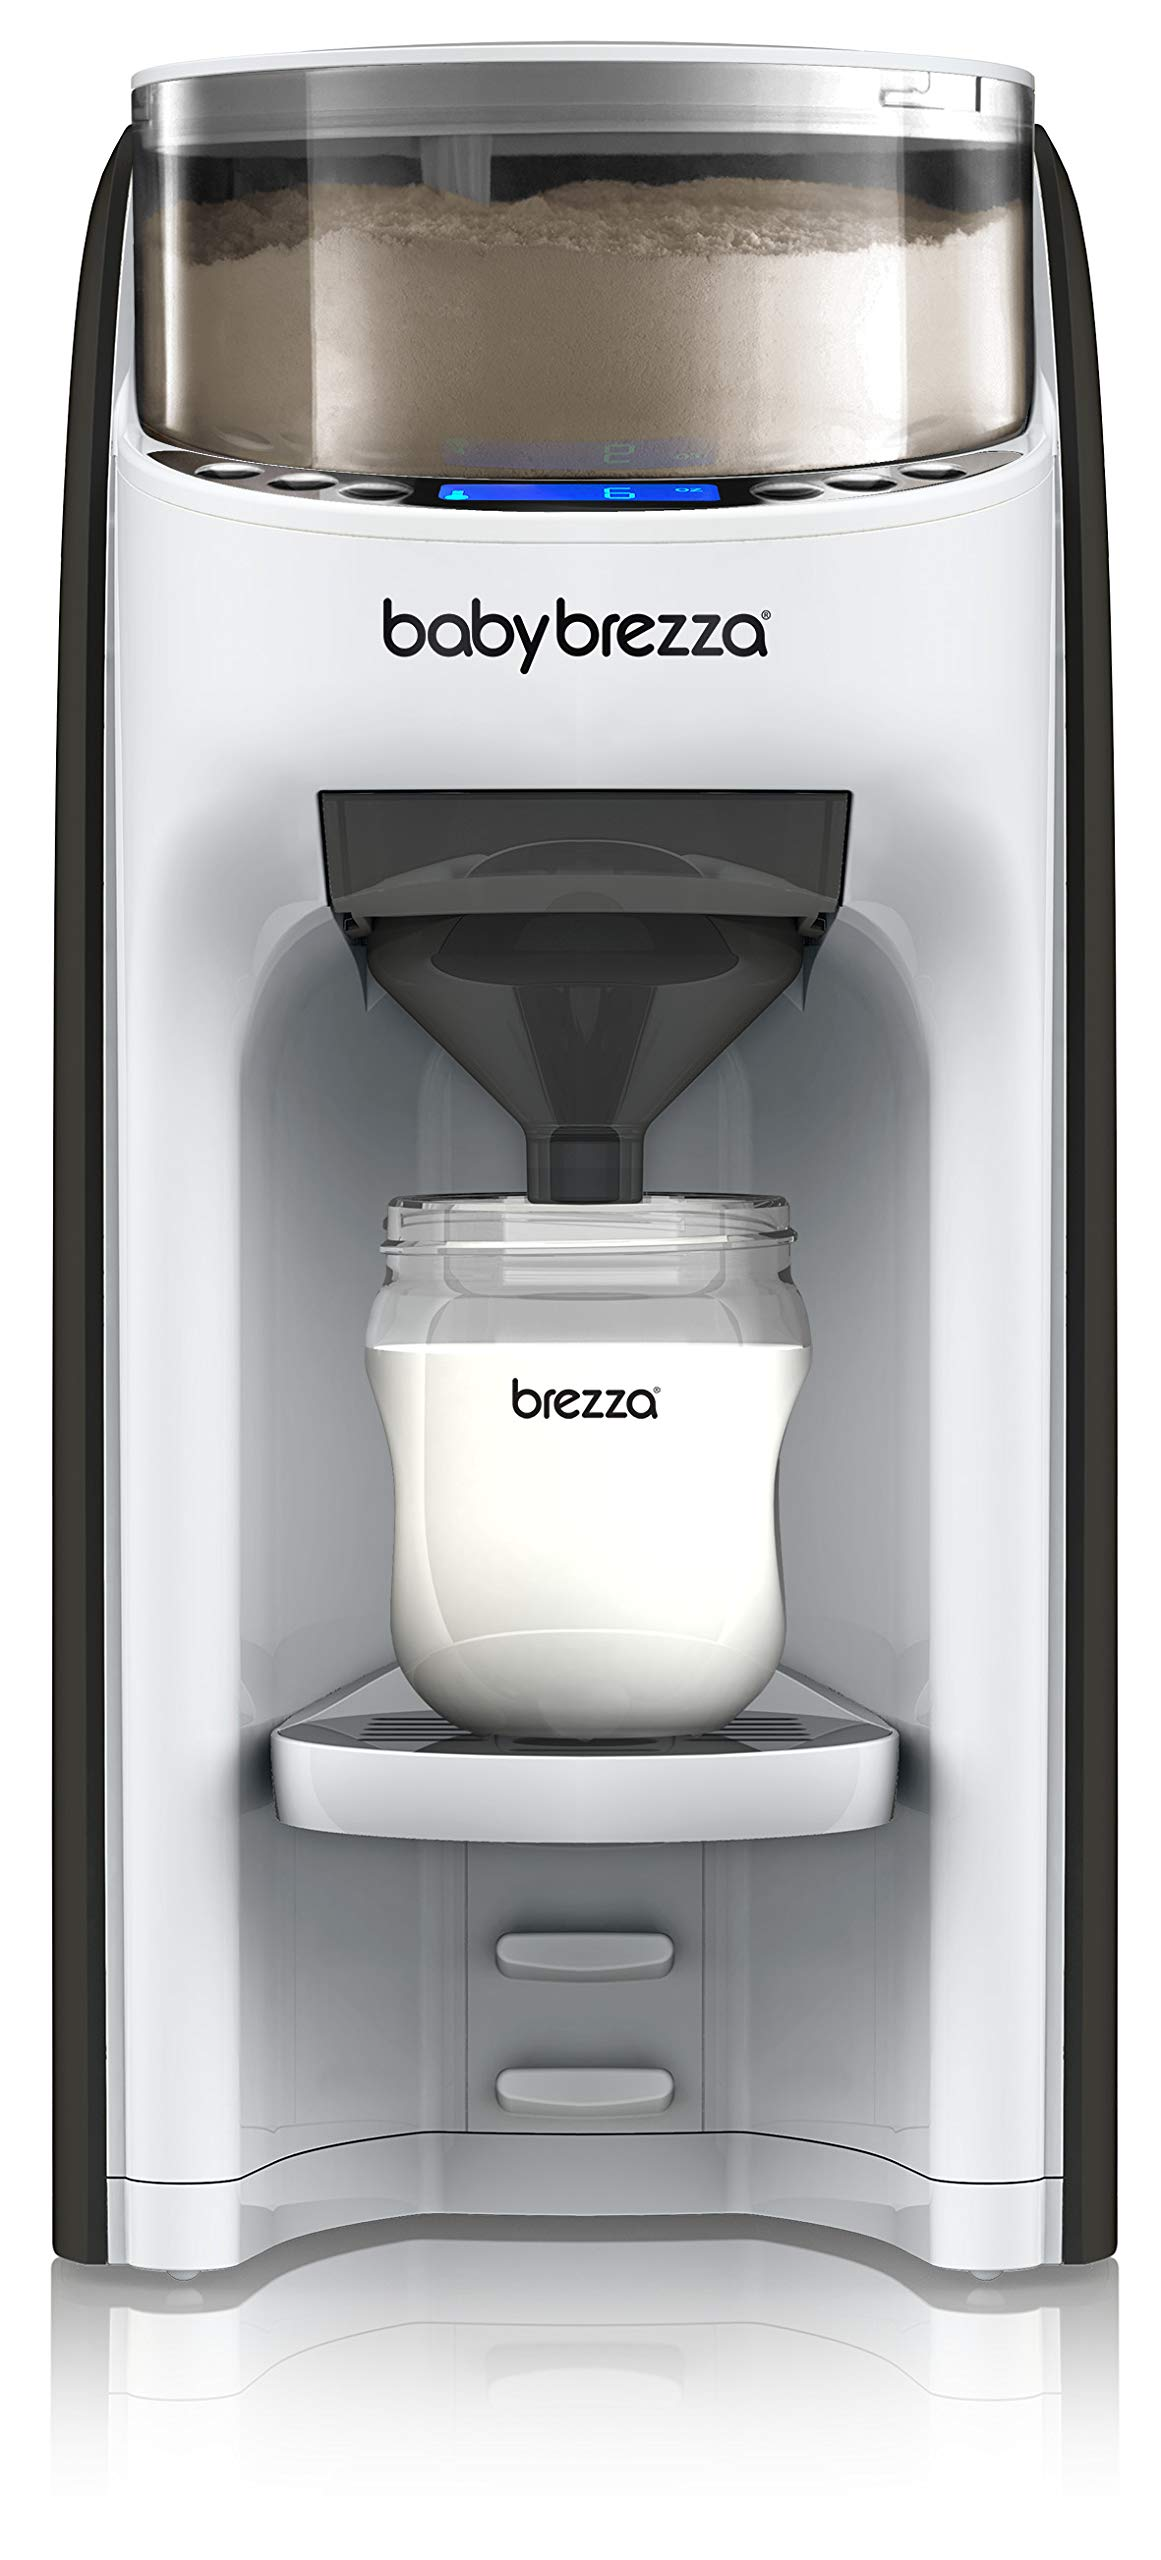 New and Improved Baby Brezza Formula Pro Advanced Formula Dispenser Machine - Automatically Mix a Warm Formula Bottle Instantly - Easily Make Bottle with Automatic Powder Blending by Baby Brezza (Image #1)